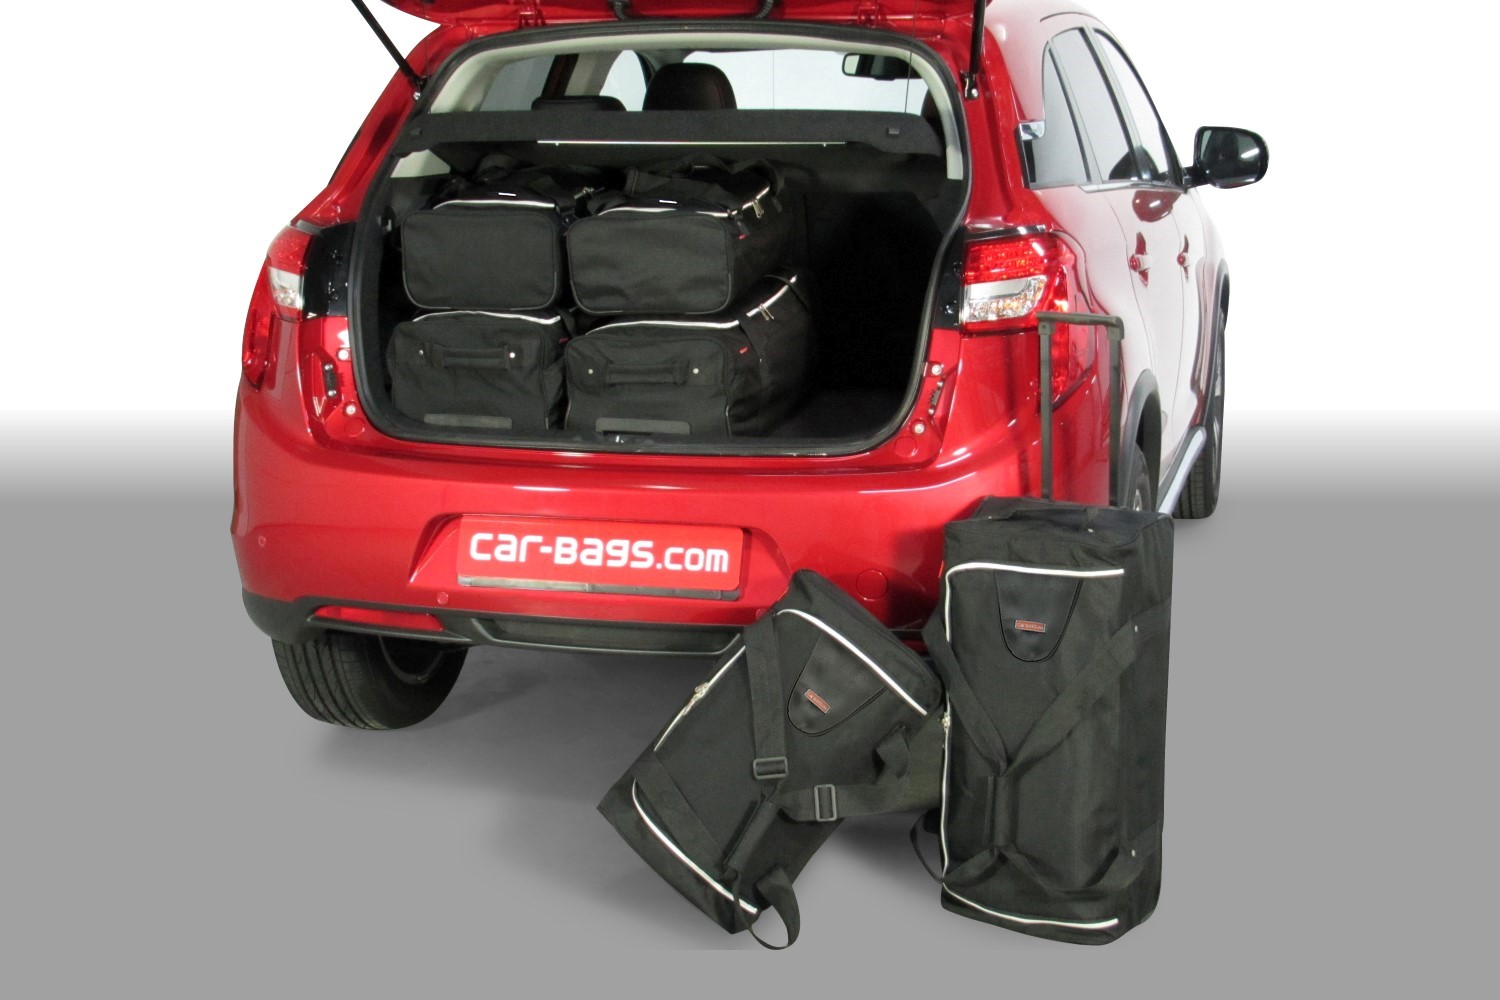 Peugeot 4008 2012- Car-Bags.com travel bag set (1)